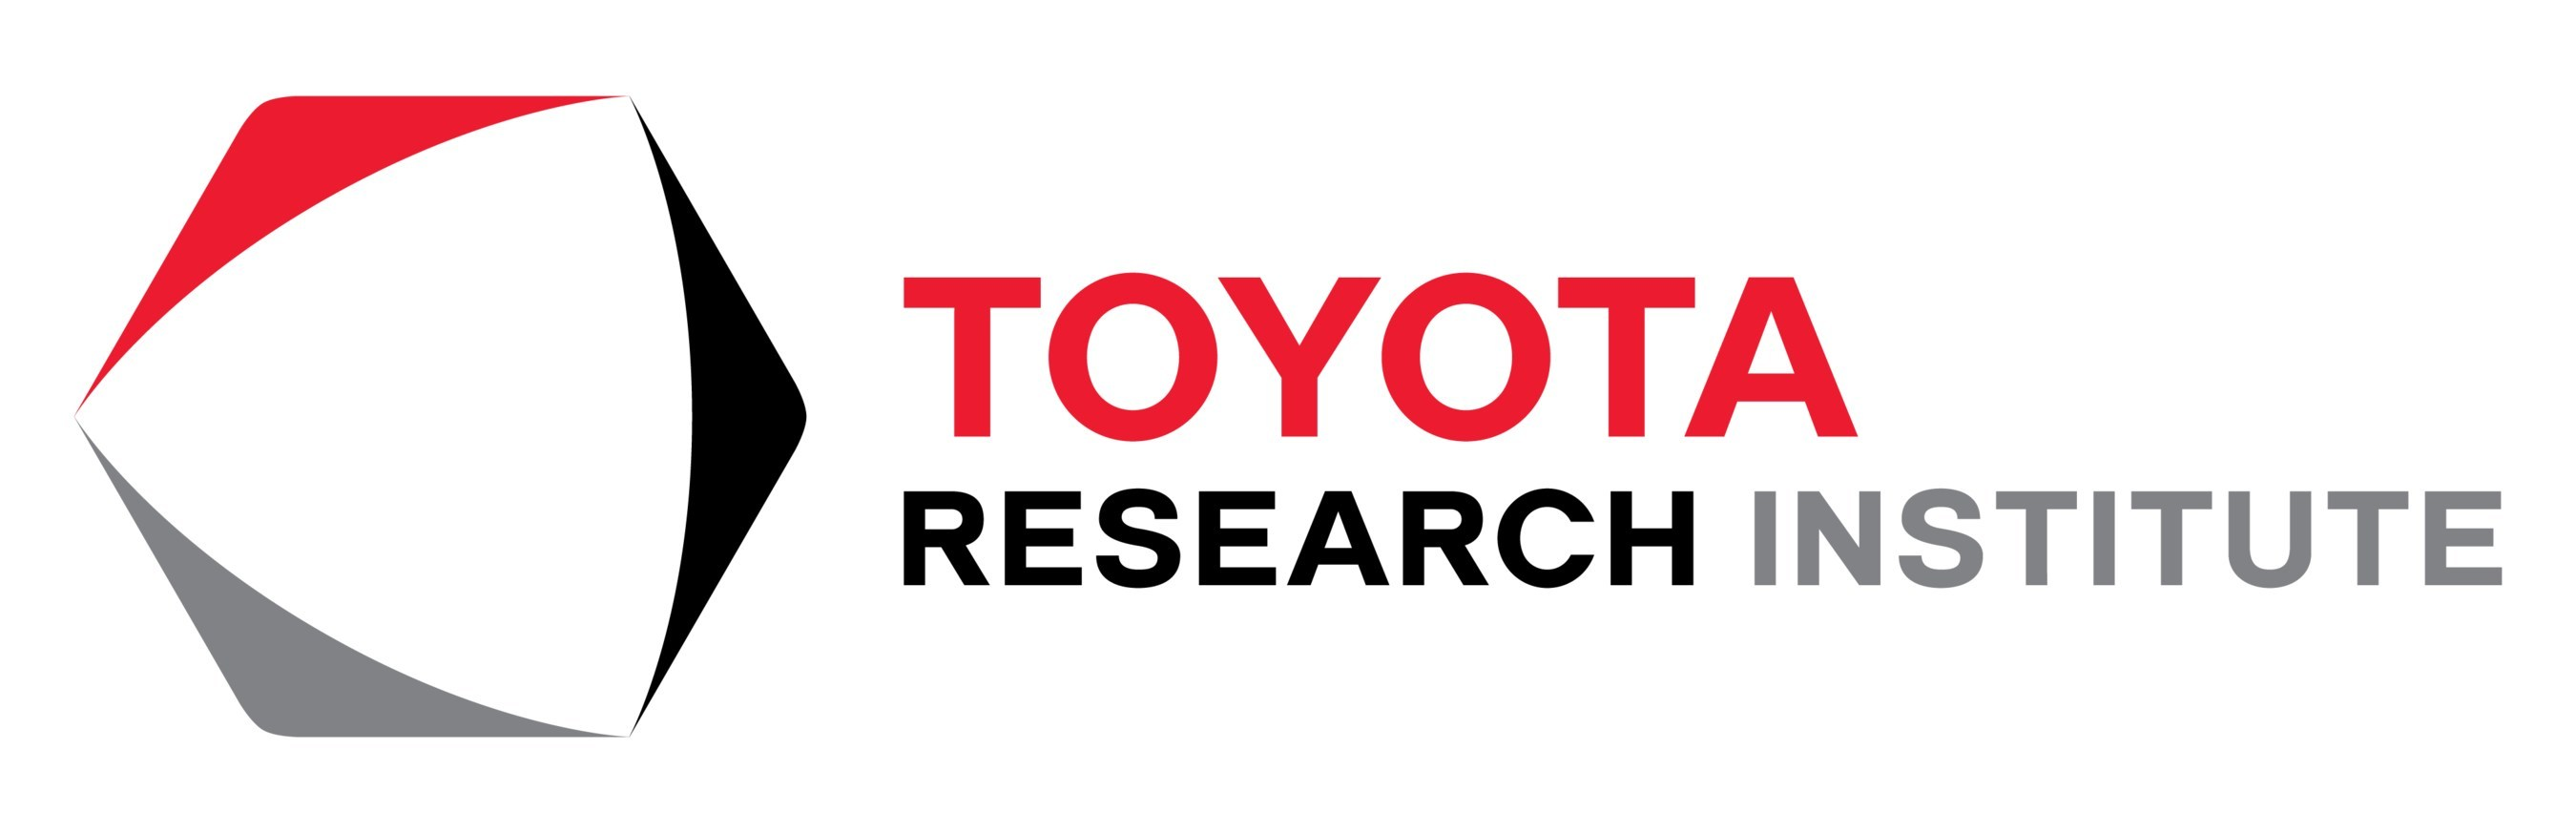 Toyota Research Institute To Bring Disruptive Tech To